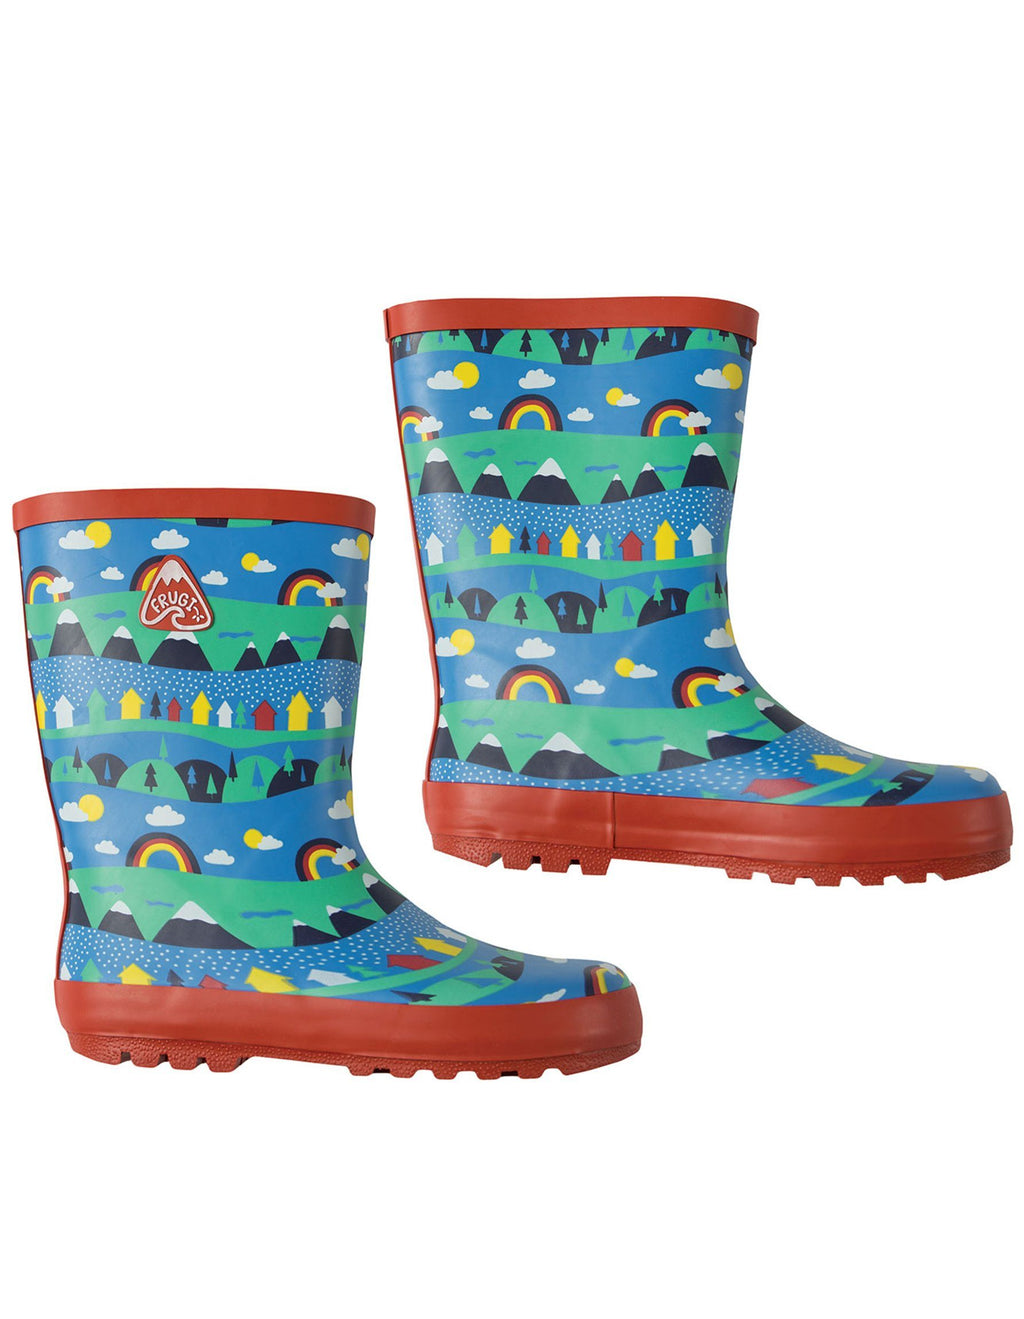 Puddle buster wellington boots - sail away alpine town